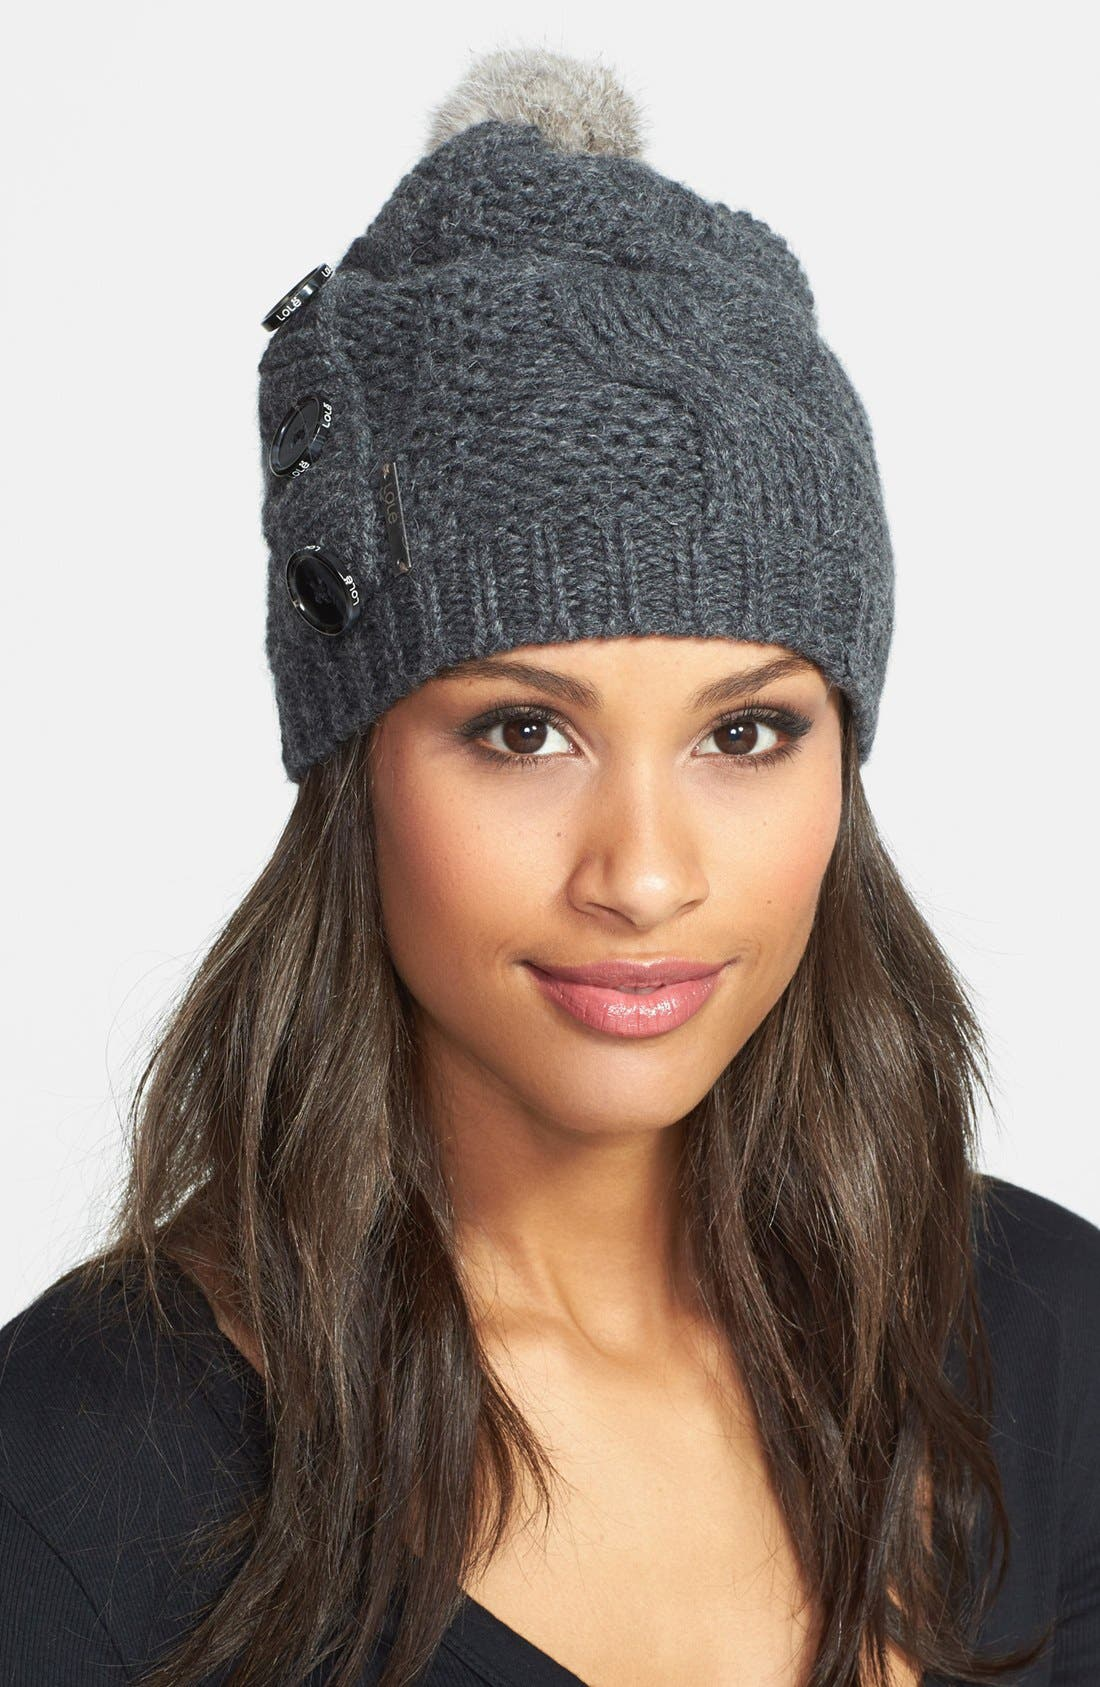 Alternate Image 1 Selected - Lole Cable Knit Wool Beanie